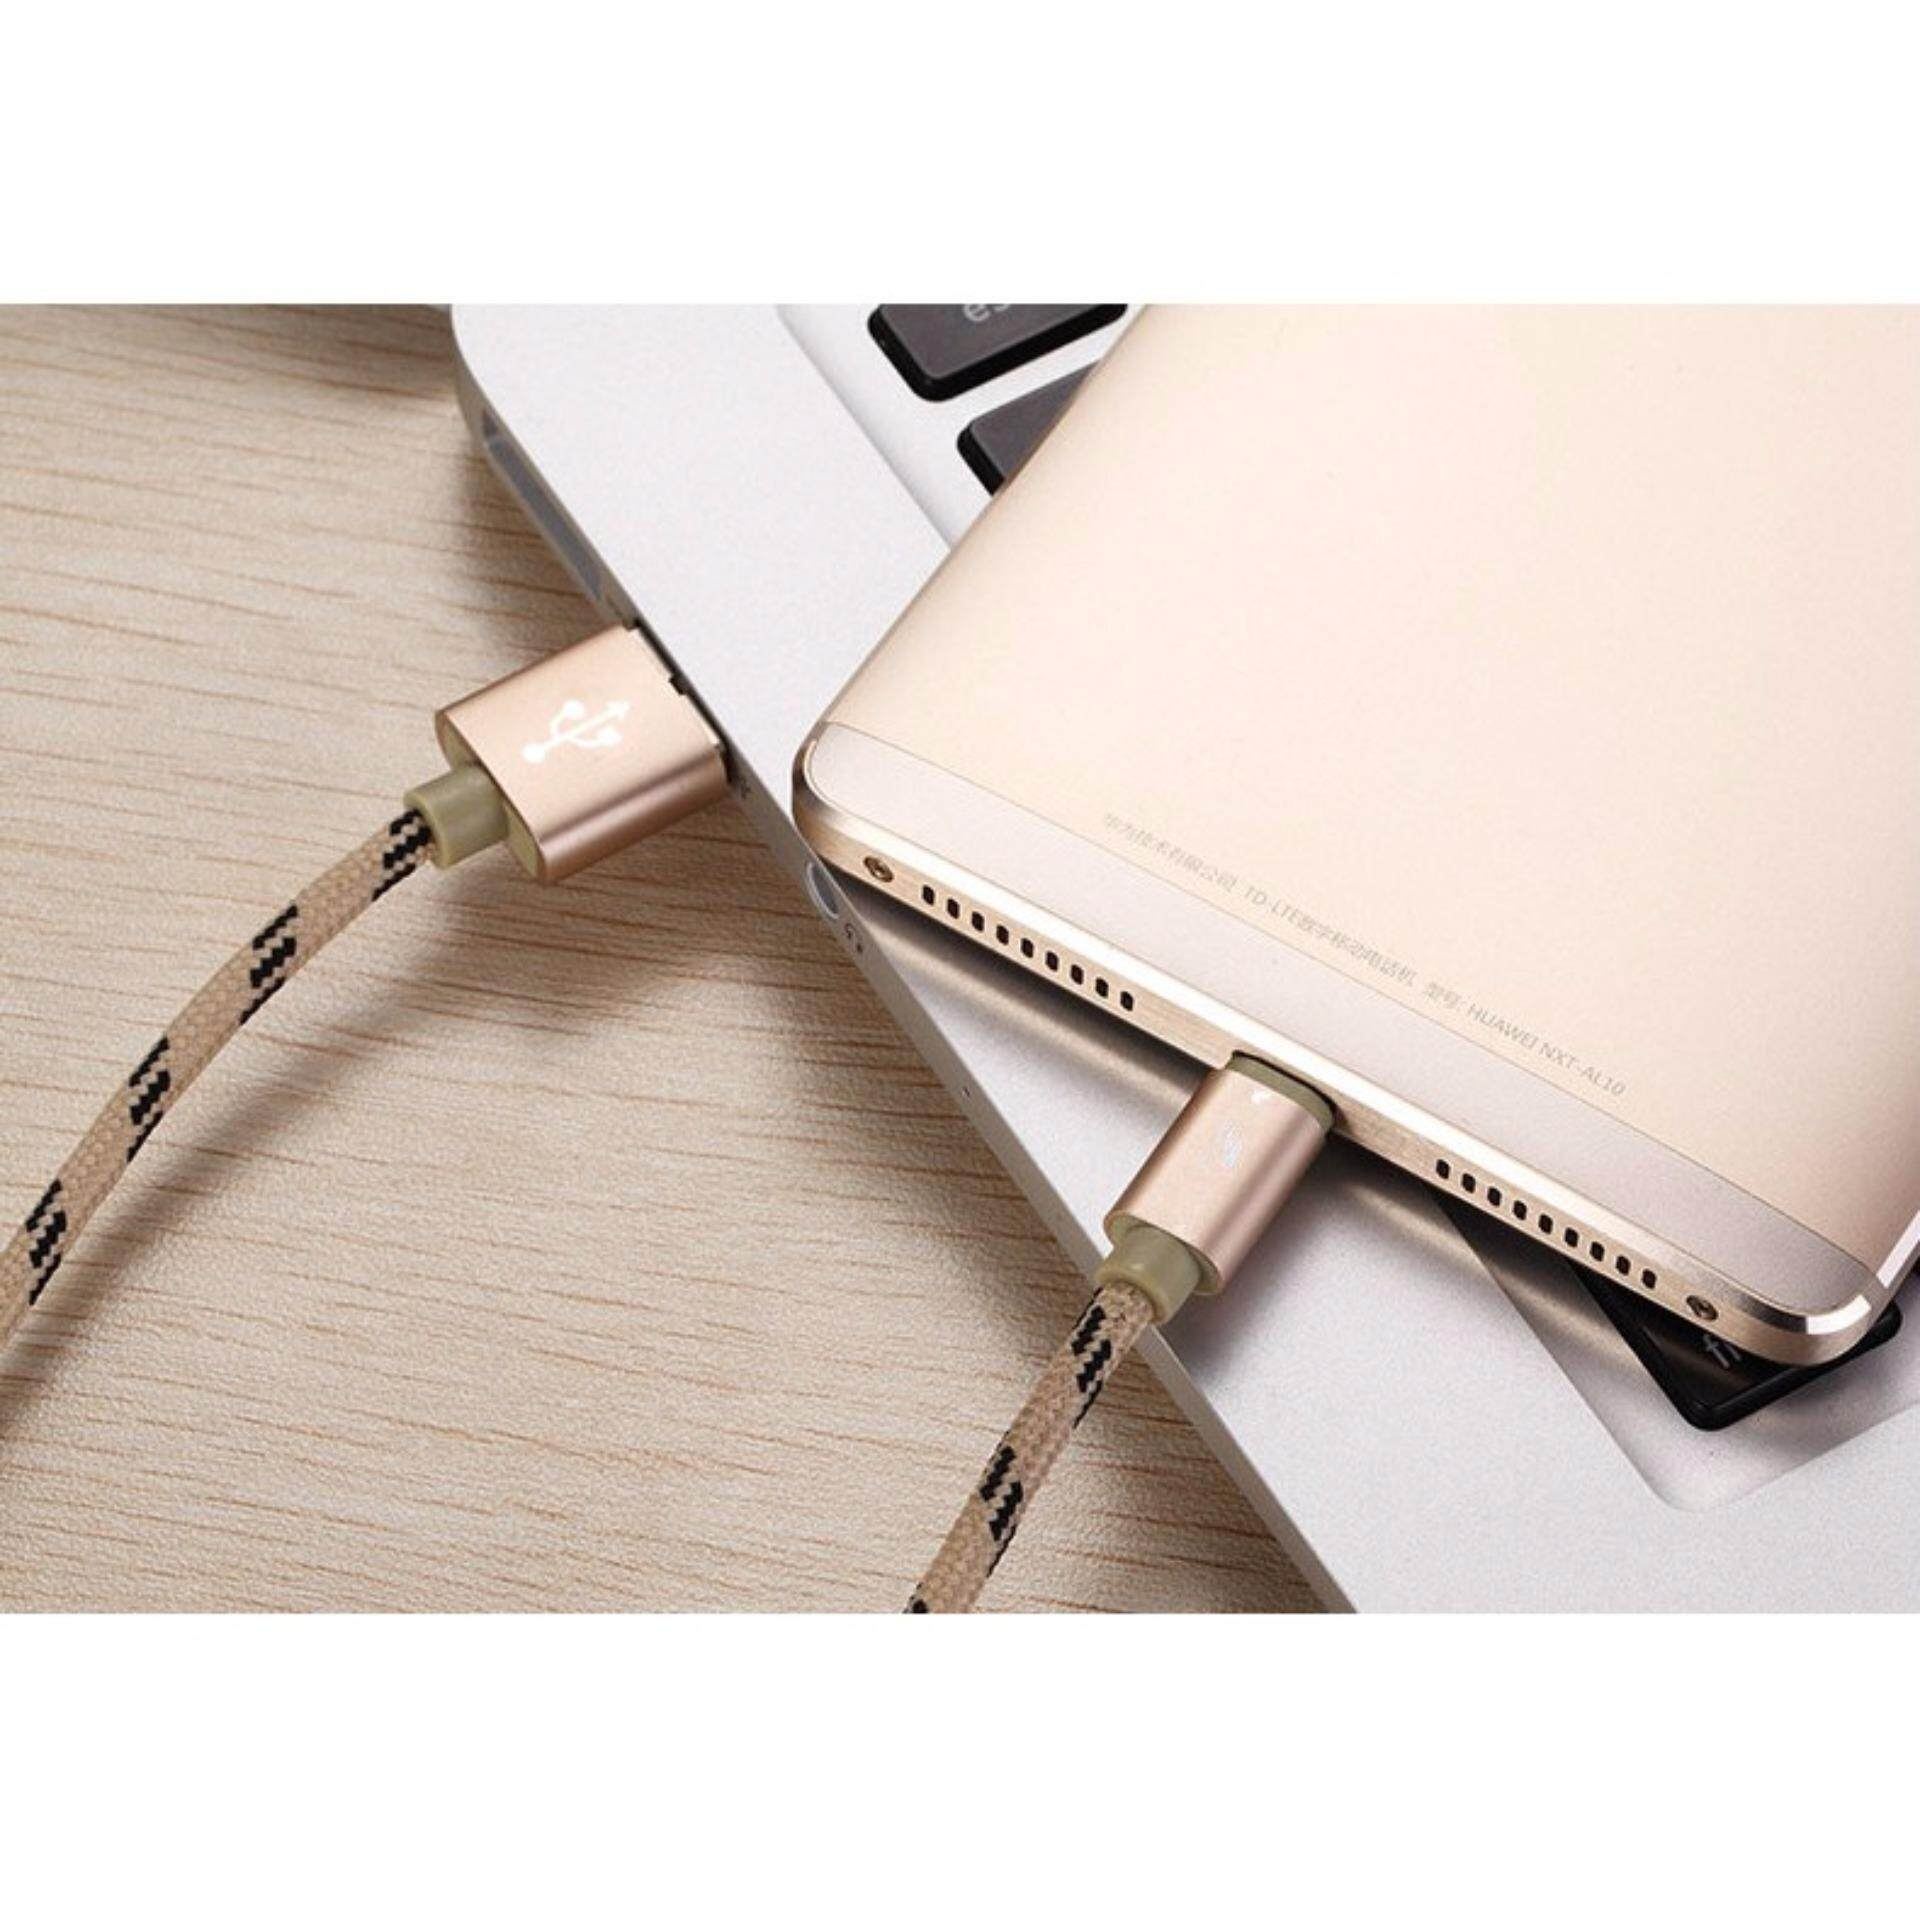 Who Sells Lightning Cable For Iphone 5 6 And Ipad Air Mini On Line Baseus Rapid Series 3 In 1 Micro Usb Type C 3a 12m Apple 5c 5s Plus Data Transfer Fast Charging Intl